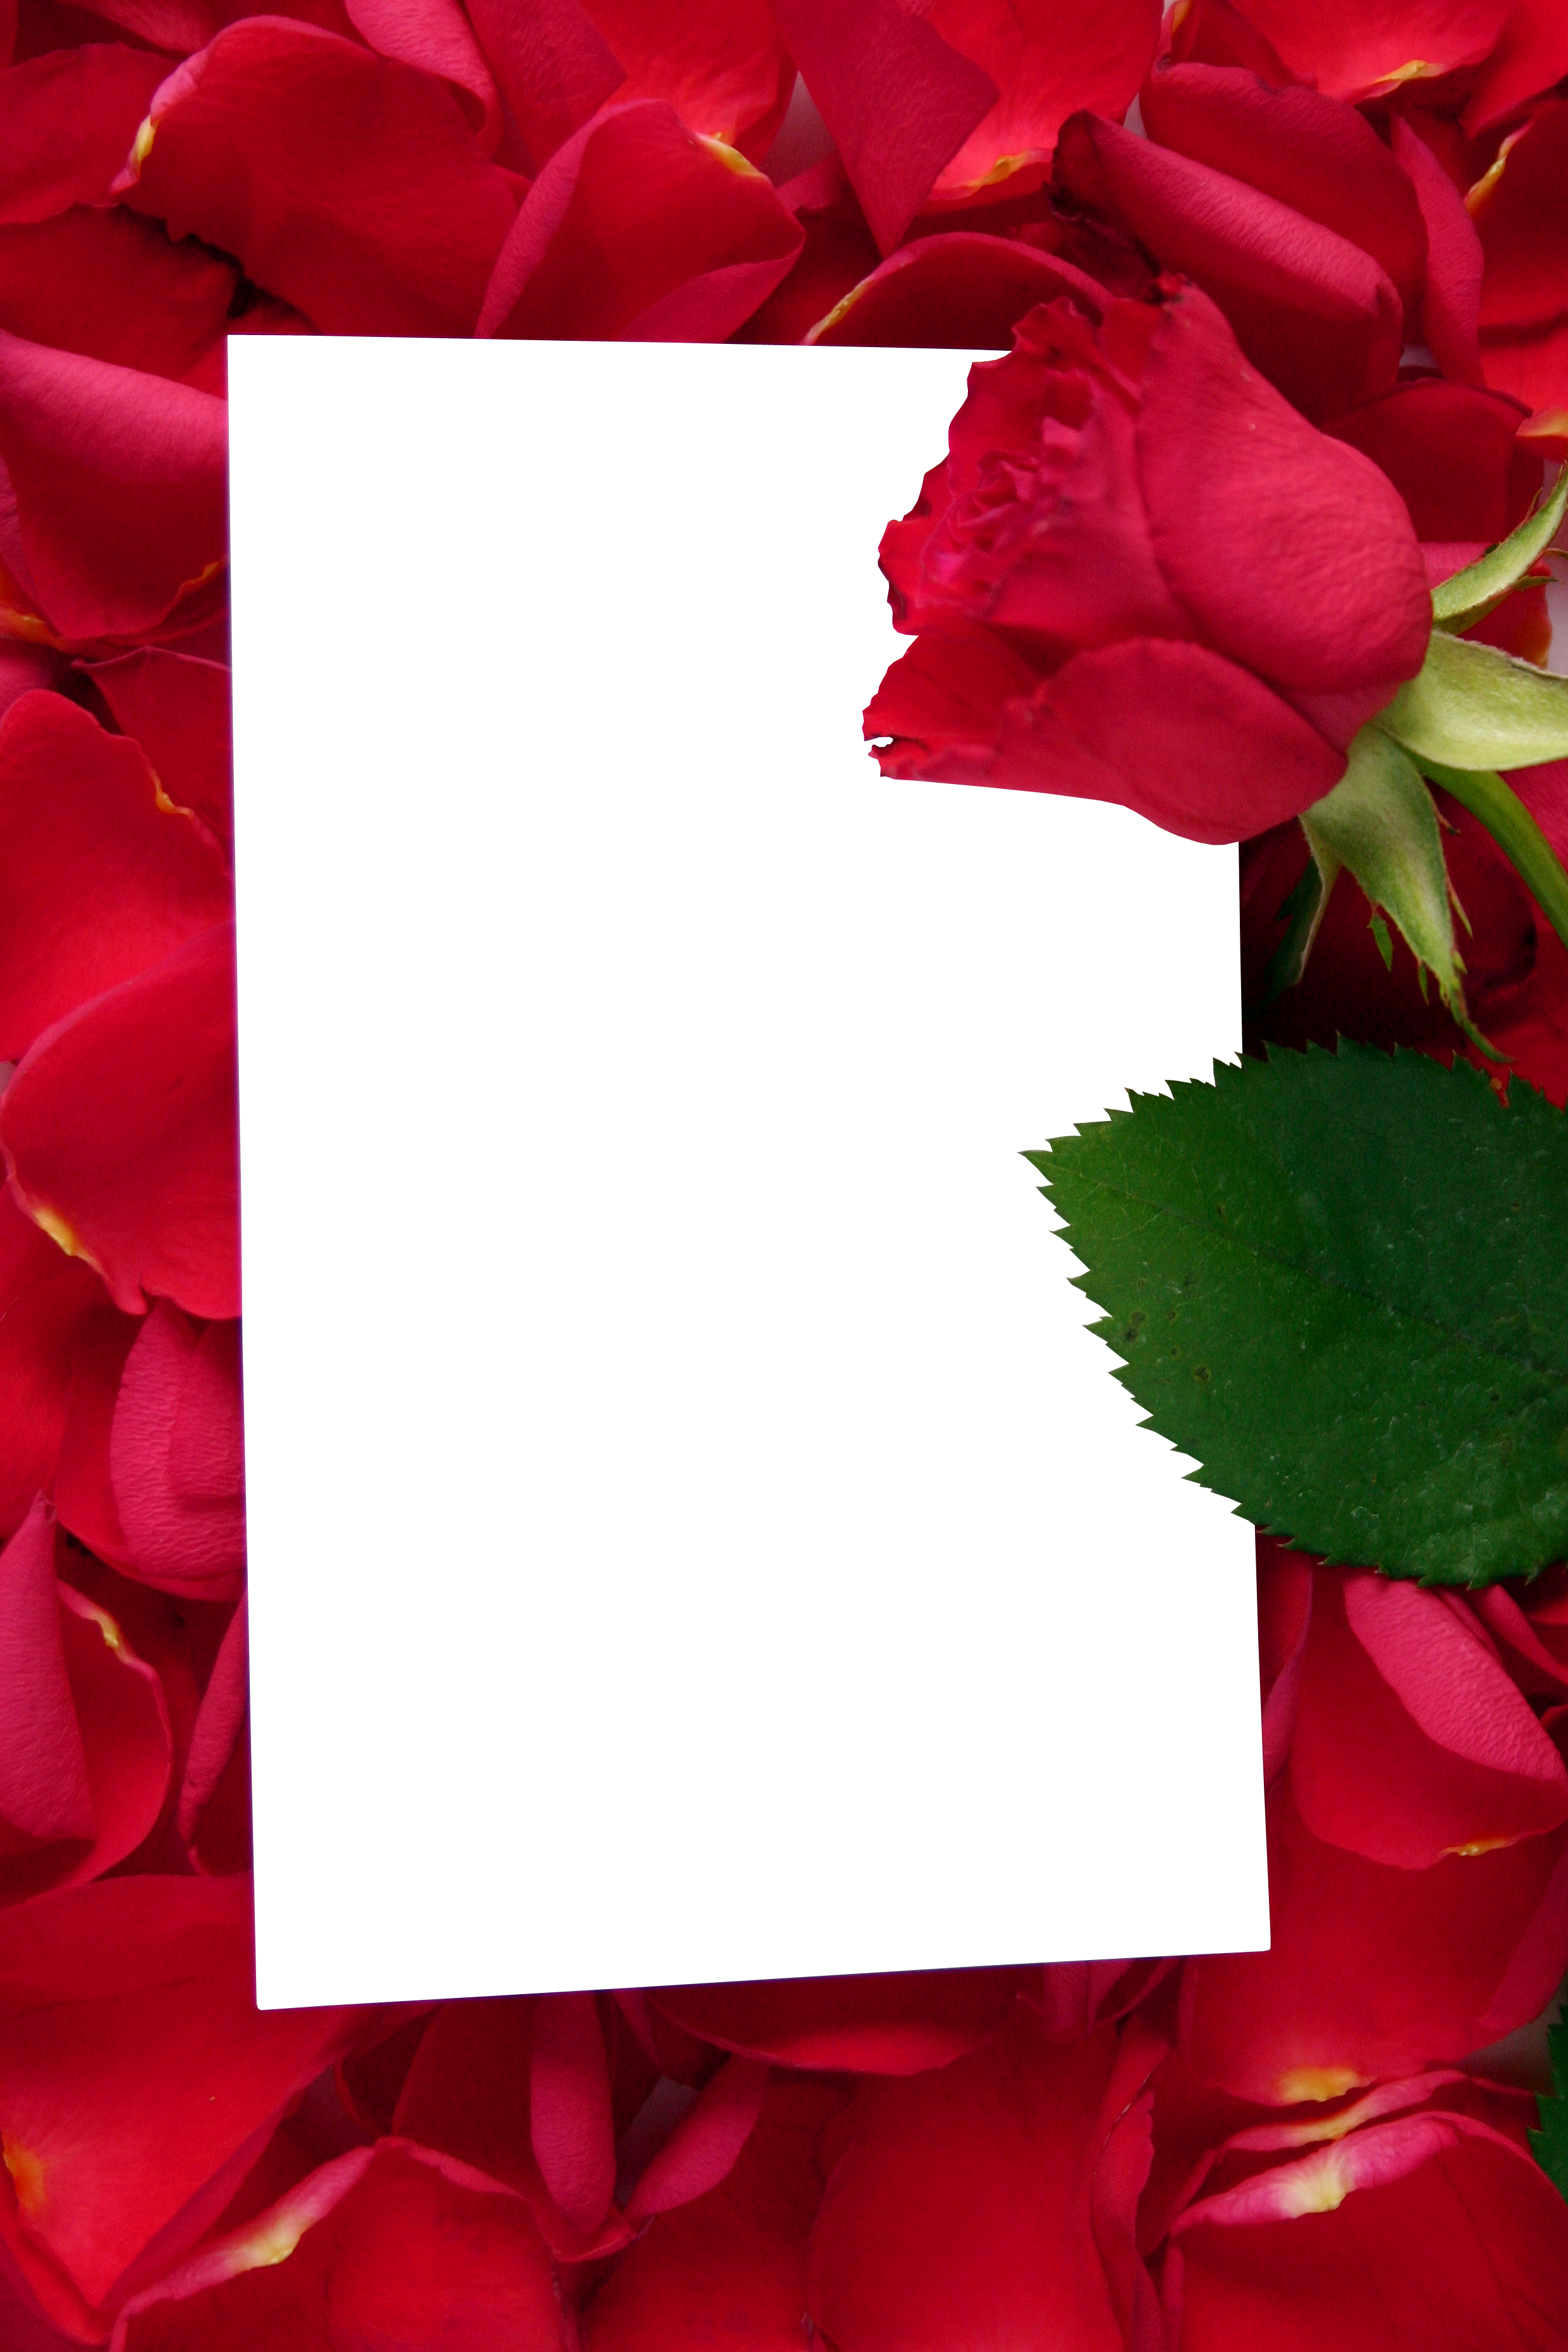 Vertical flower border clipart jpg freeuse download Large Transparent Vertical Frame with Red Roses | Gallery ... jpg freeuse download